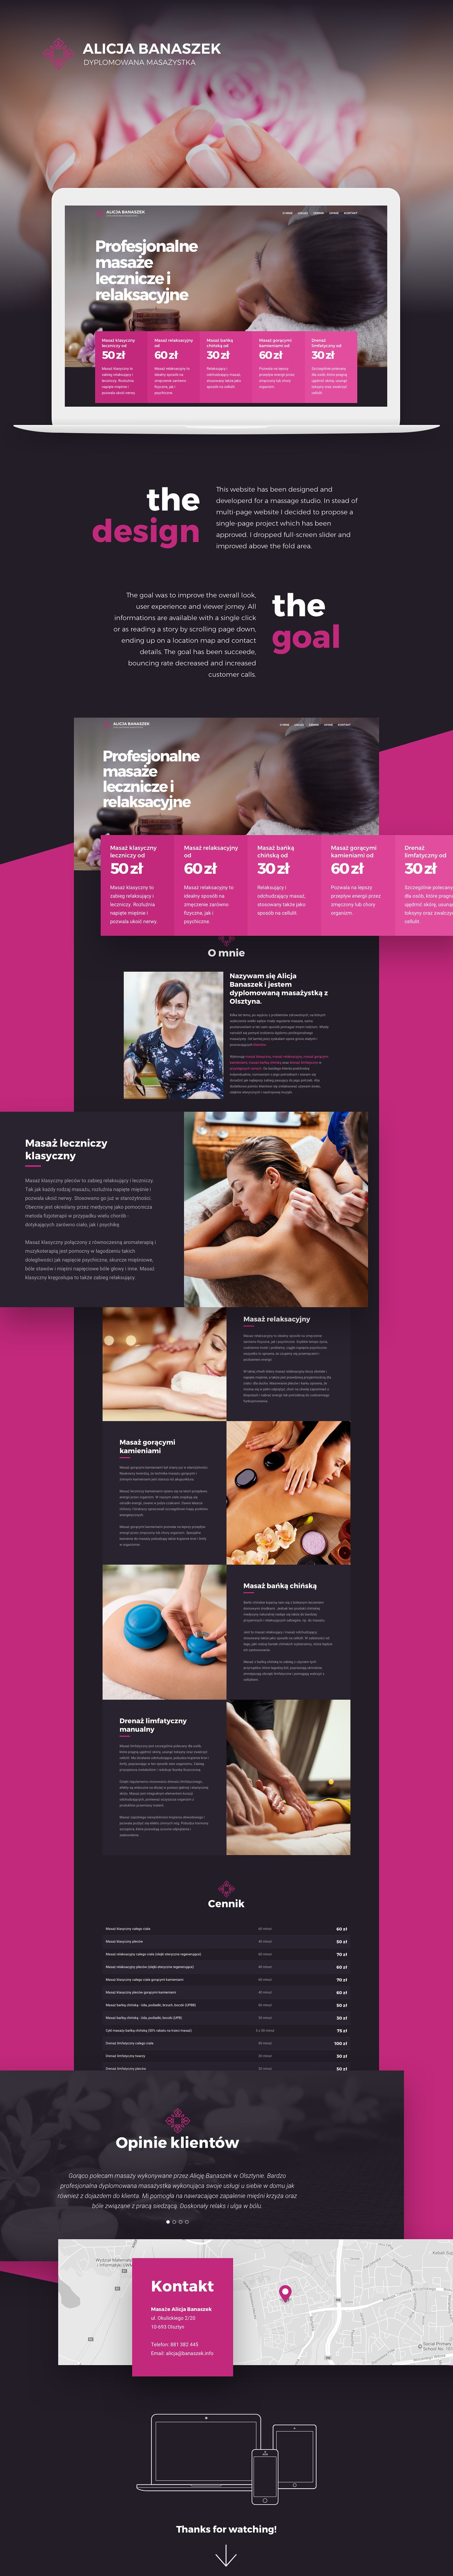 massages masseuse masseur therapist beauty Spa Web Design  ui design UX design product design